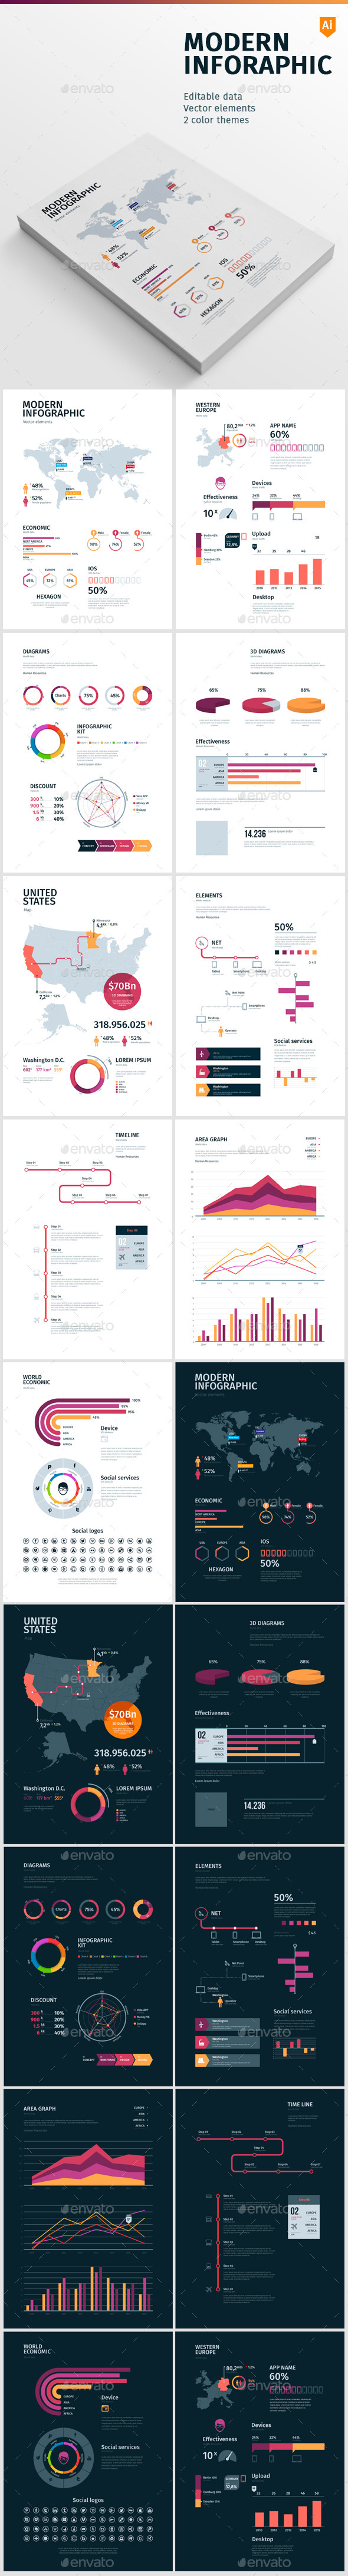 GraphicRiver Modern Infographic 10457391